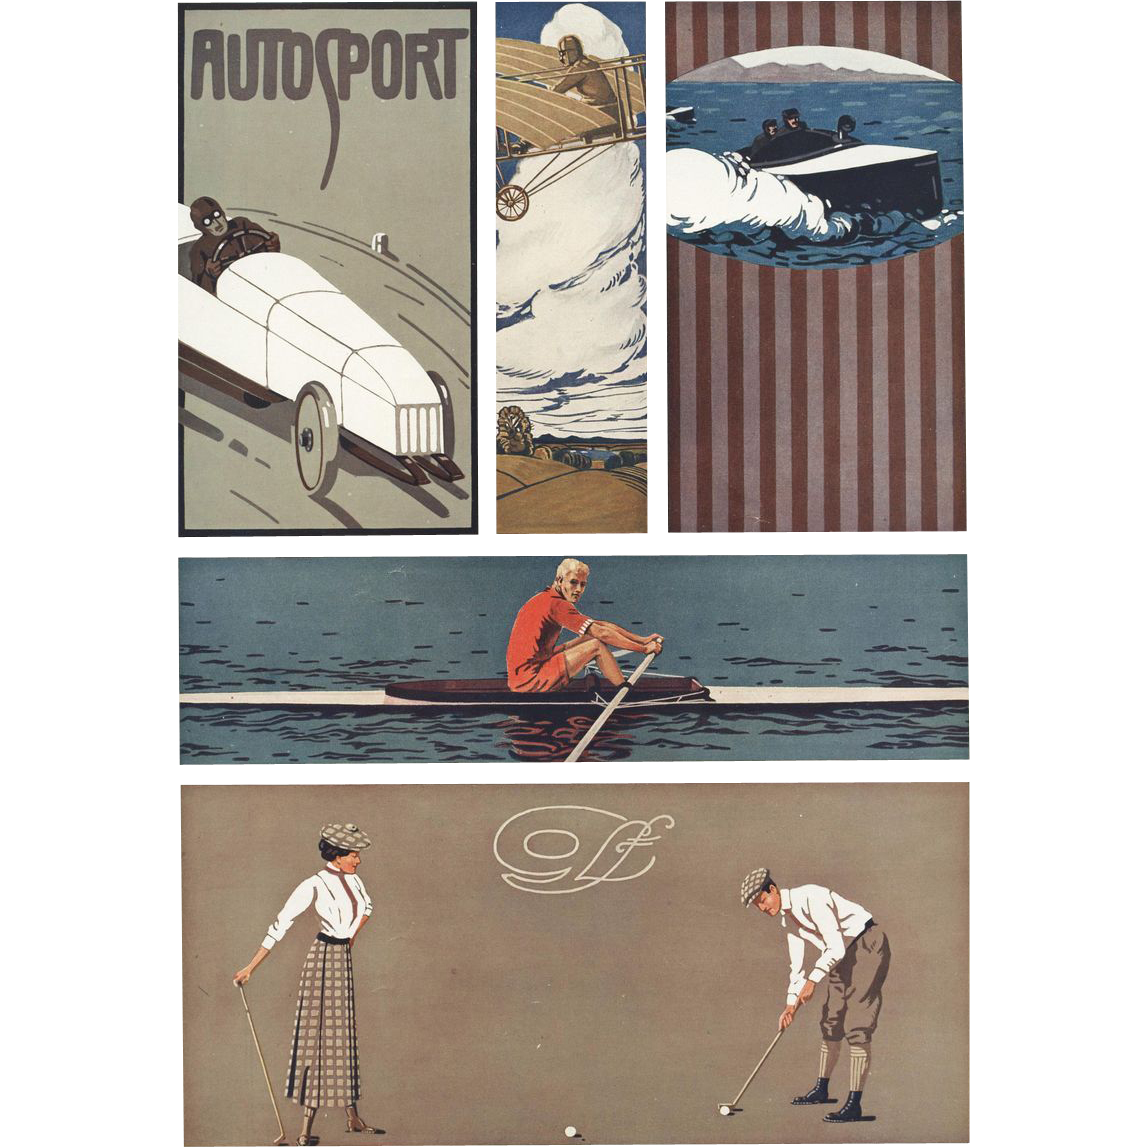 Art Deco / Nouveau Sports Graphic / Lithograph K. Biebrach